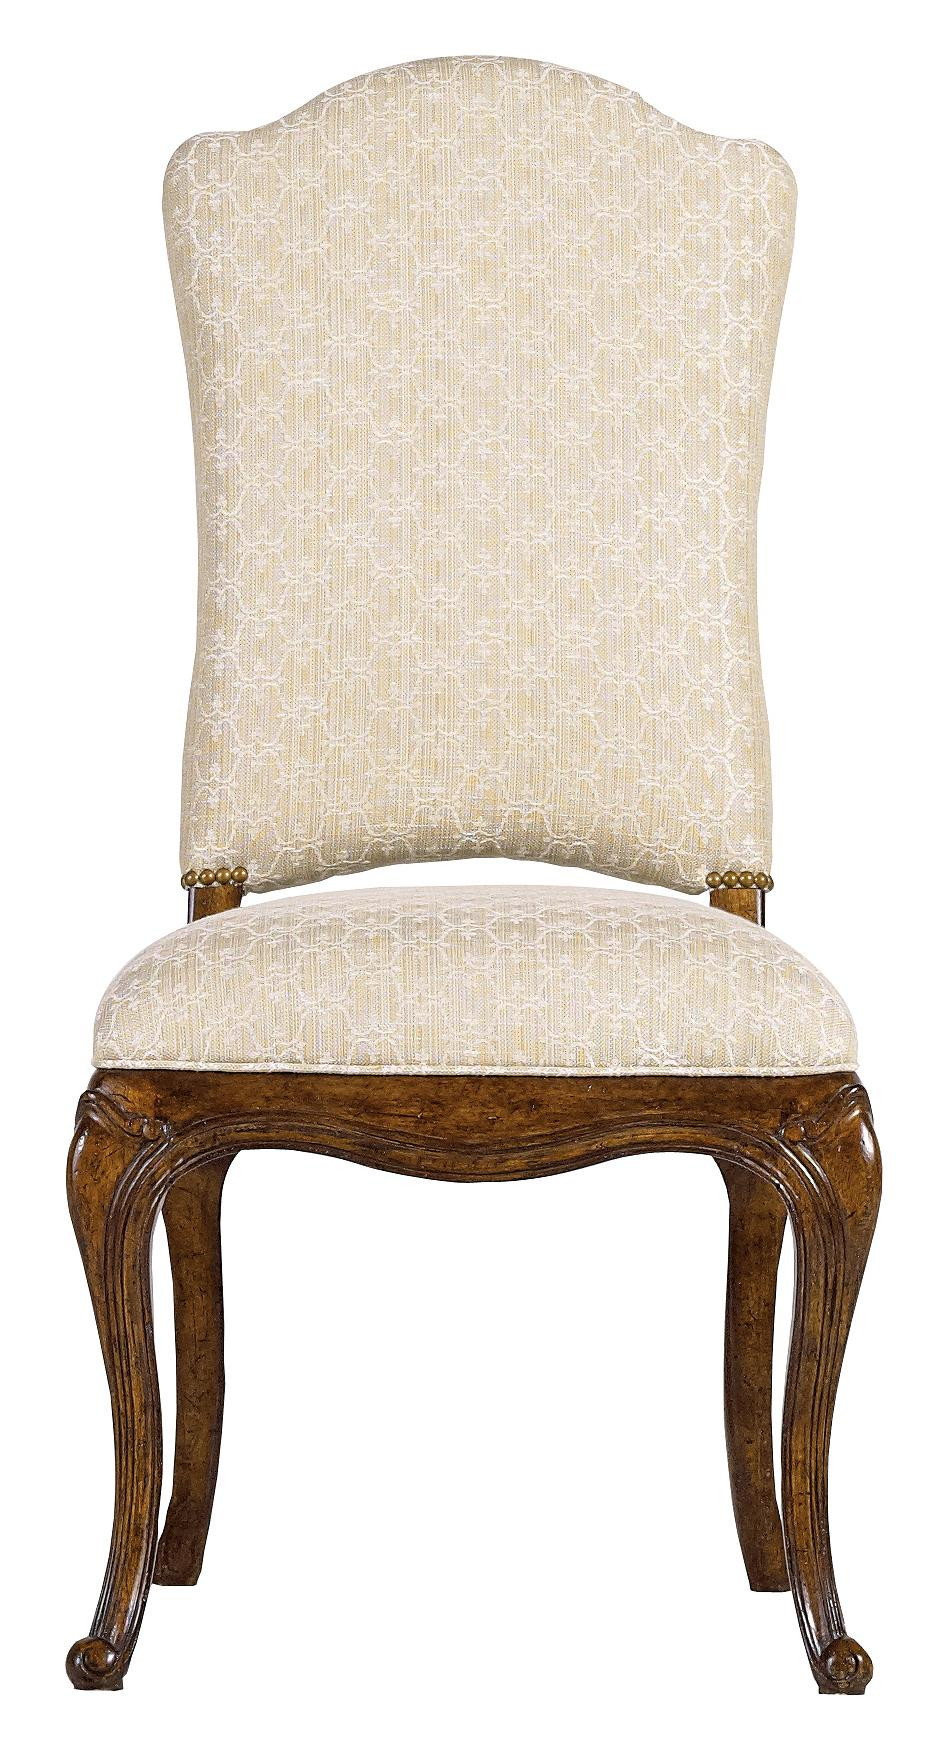 Stanley Furniture Arrondissement Volute Side Chair - Item Number: 222-11-65